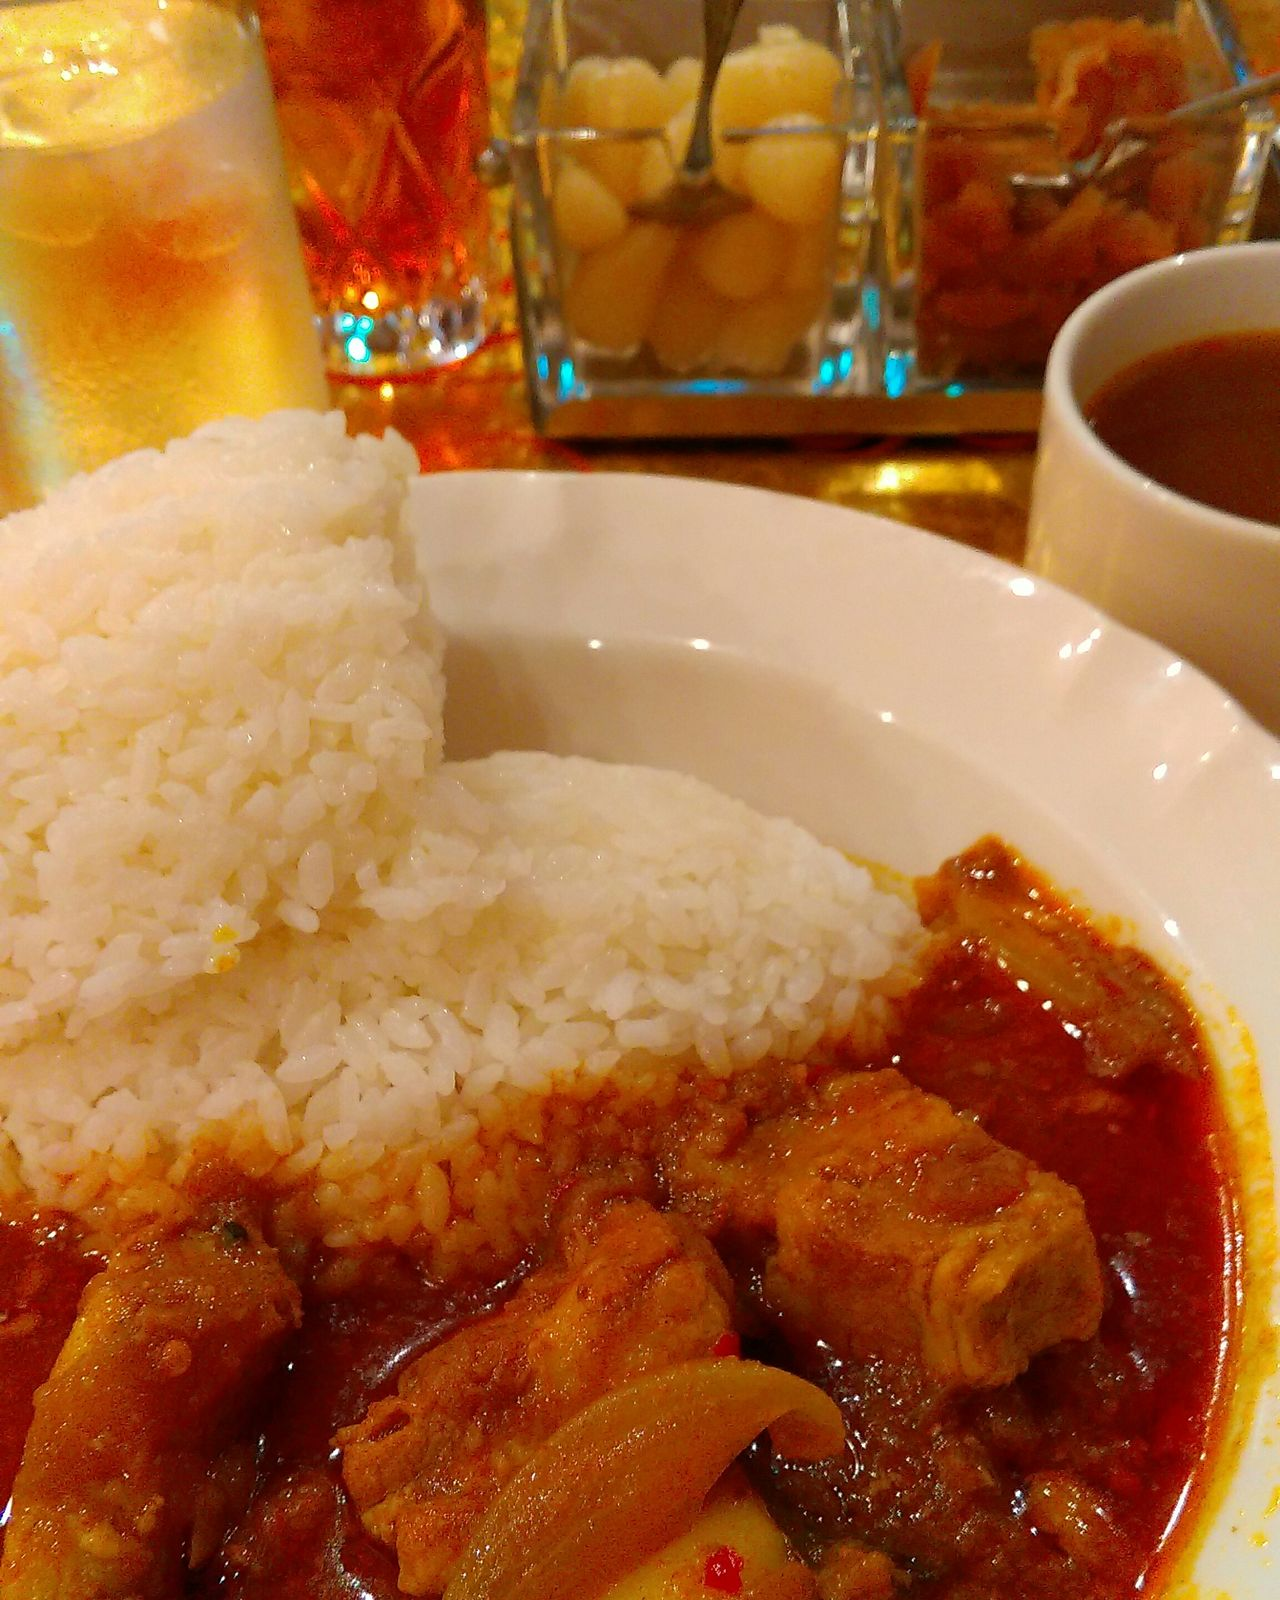 Curry Spiced Up Relaxing Walking Around Taking Photos From My Point Of View Yummy Foodporn In My Mouf Food Enjoying A Meal Foodphotography Delicious Curry Rice Pork Spicy Food インド風ポークカレー!